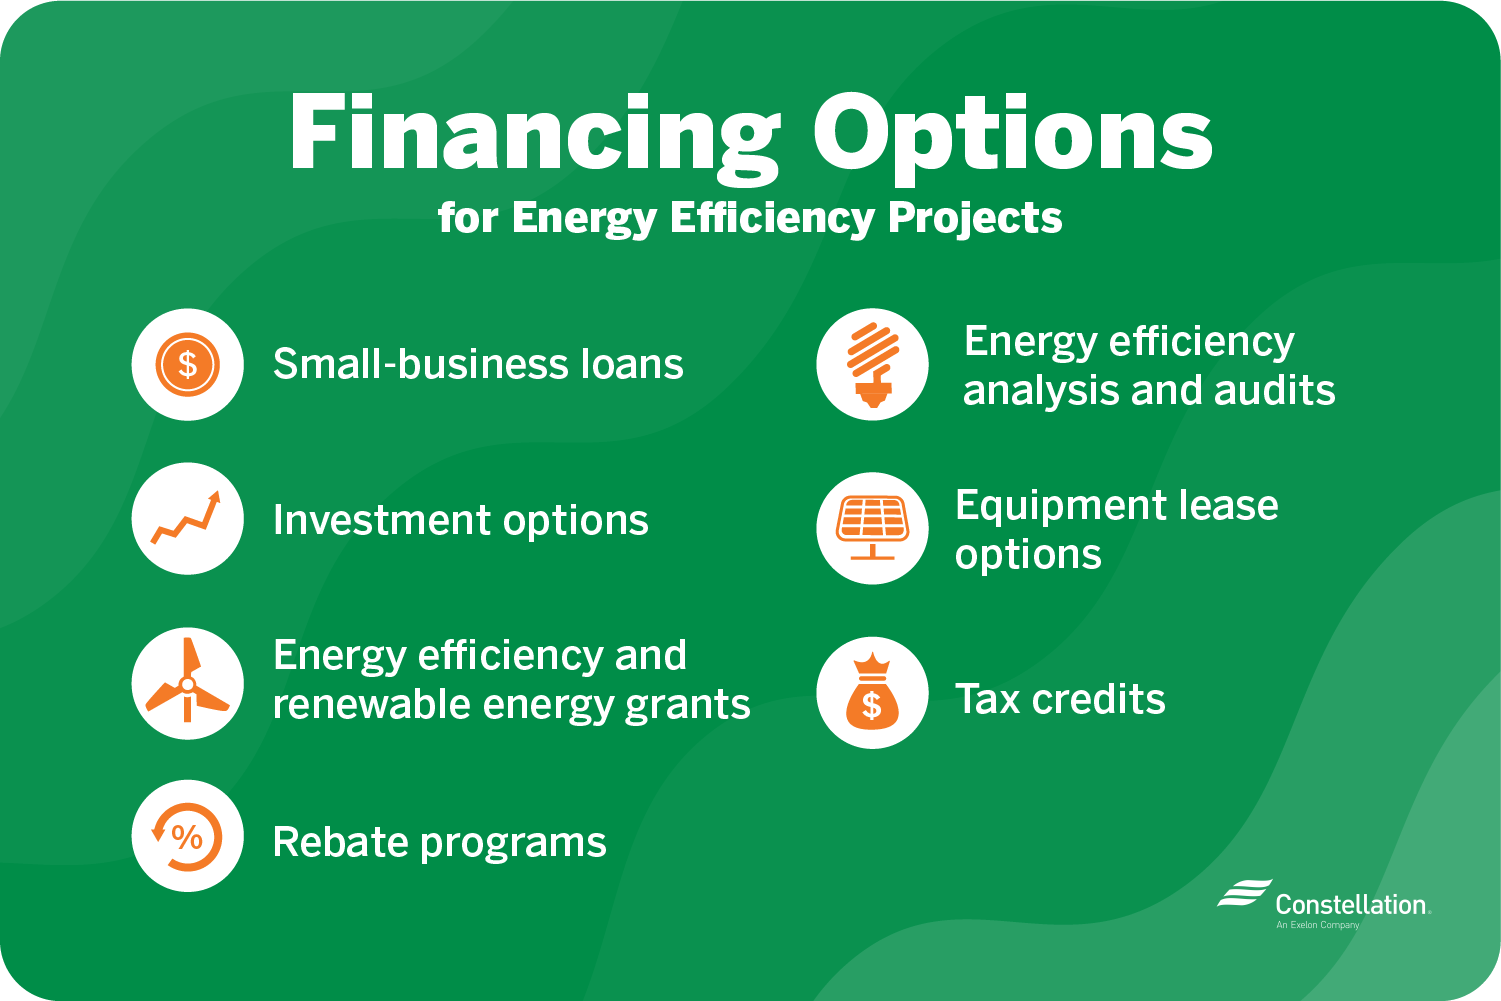 financing options for small business energy efficiency projects